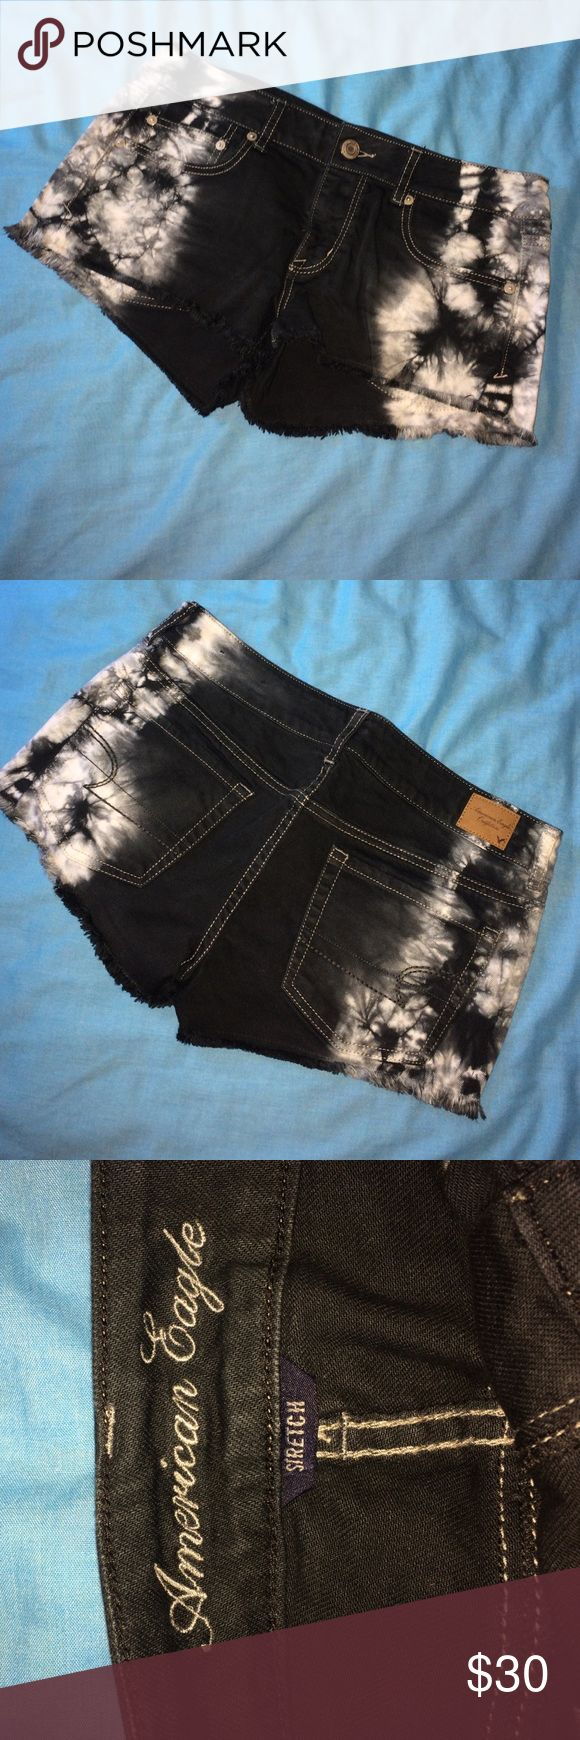 Acid Wash shorts Super cool acid wash shorts from American eagle. Stretch material, size 6. Worn once. American Eagle Outfitters Shorts Jean Shorts